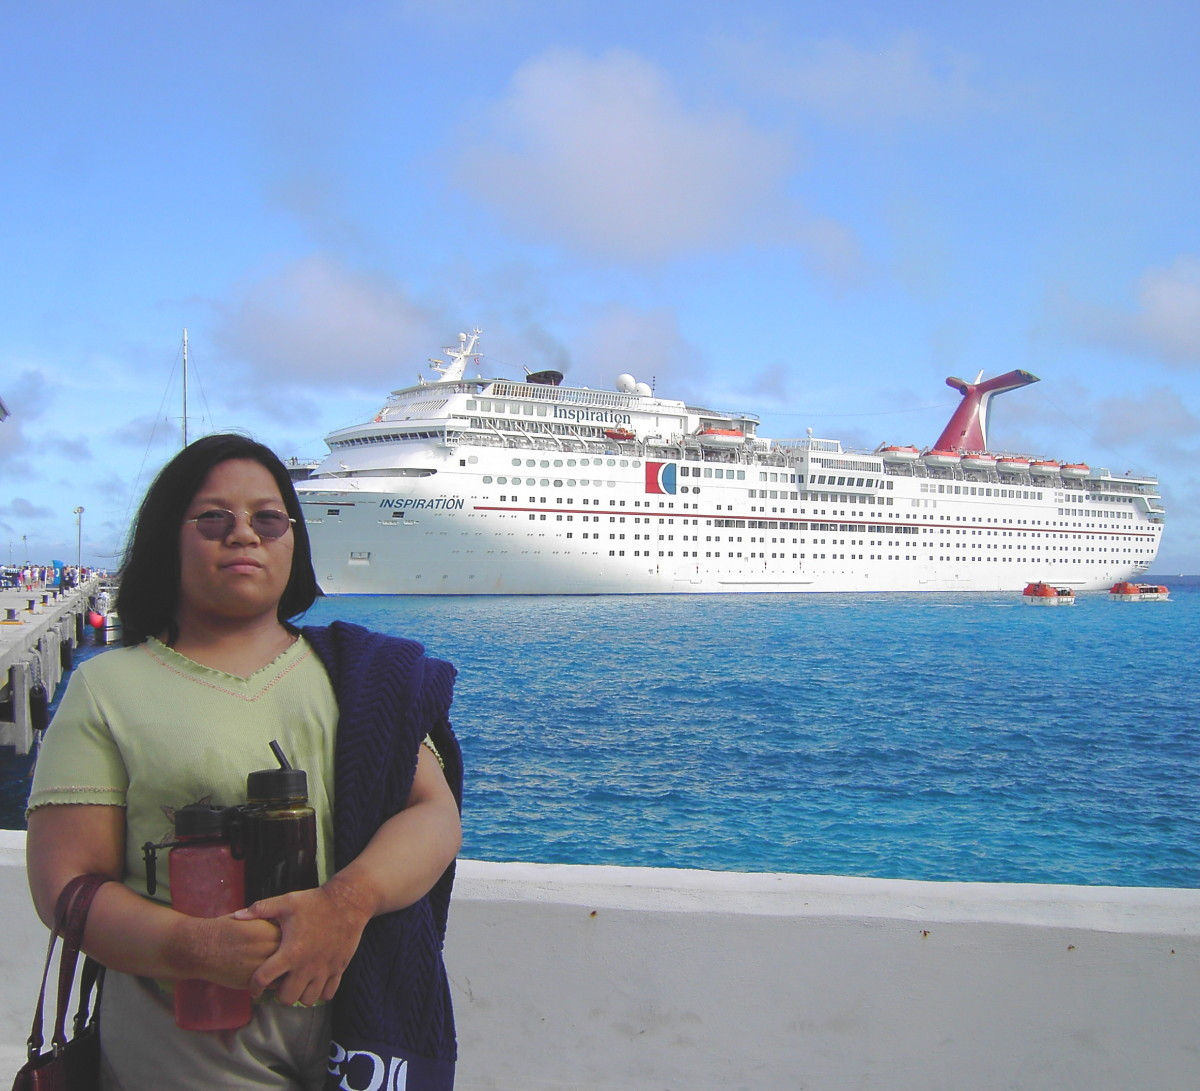 Me, in Roatan, Honduras, in May, 2010